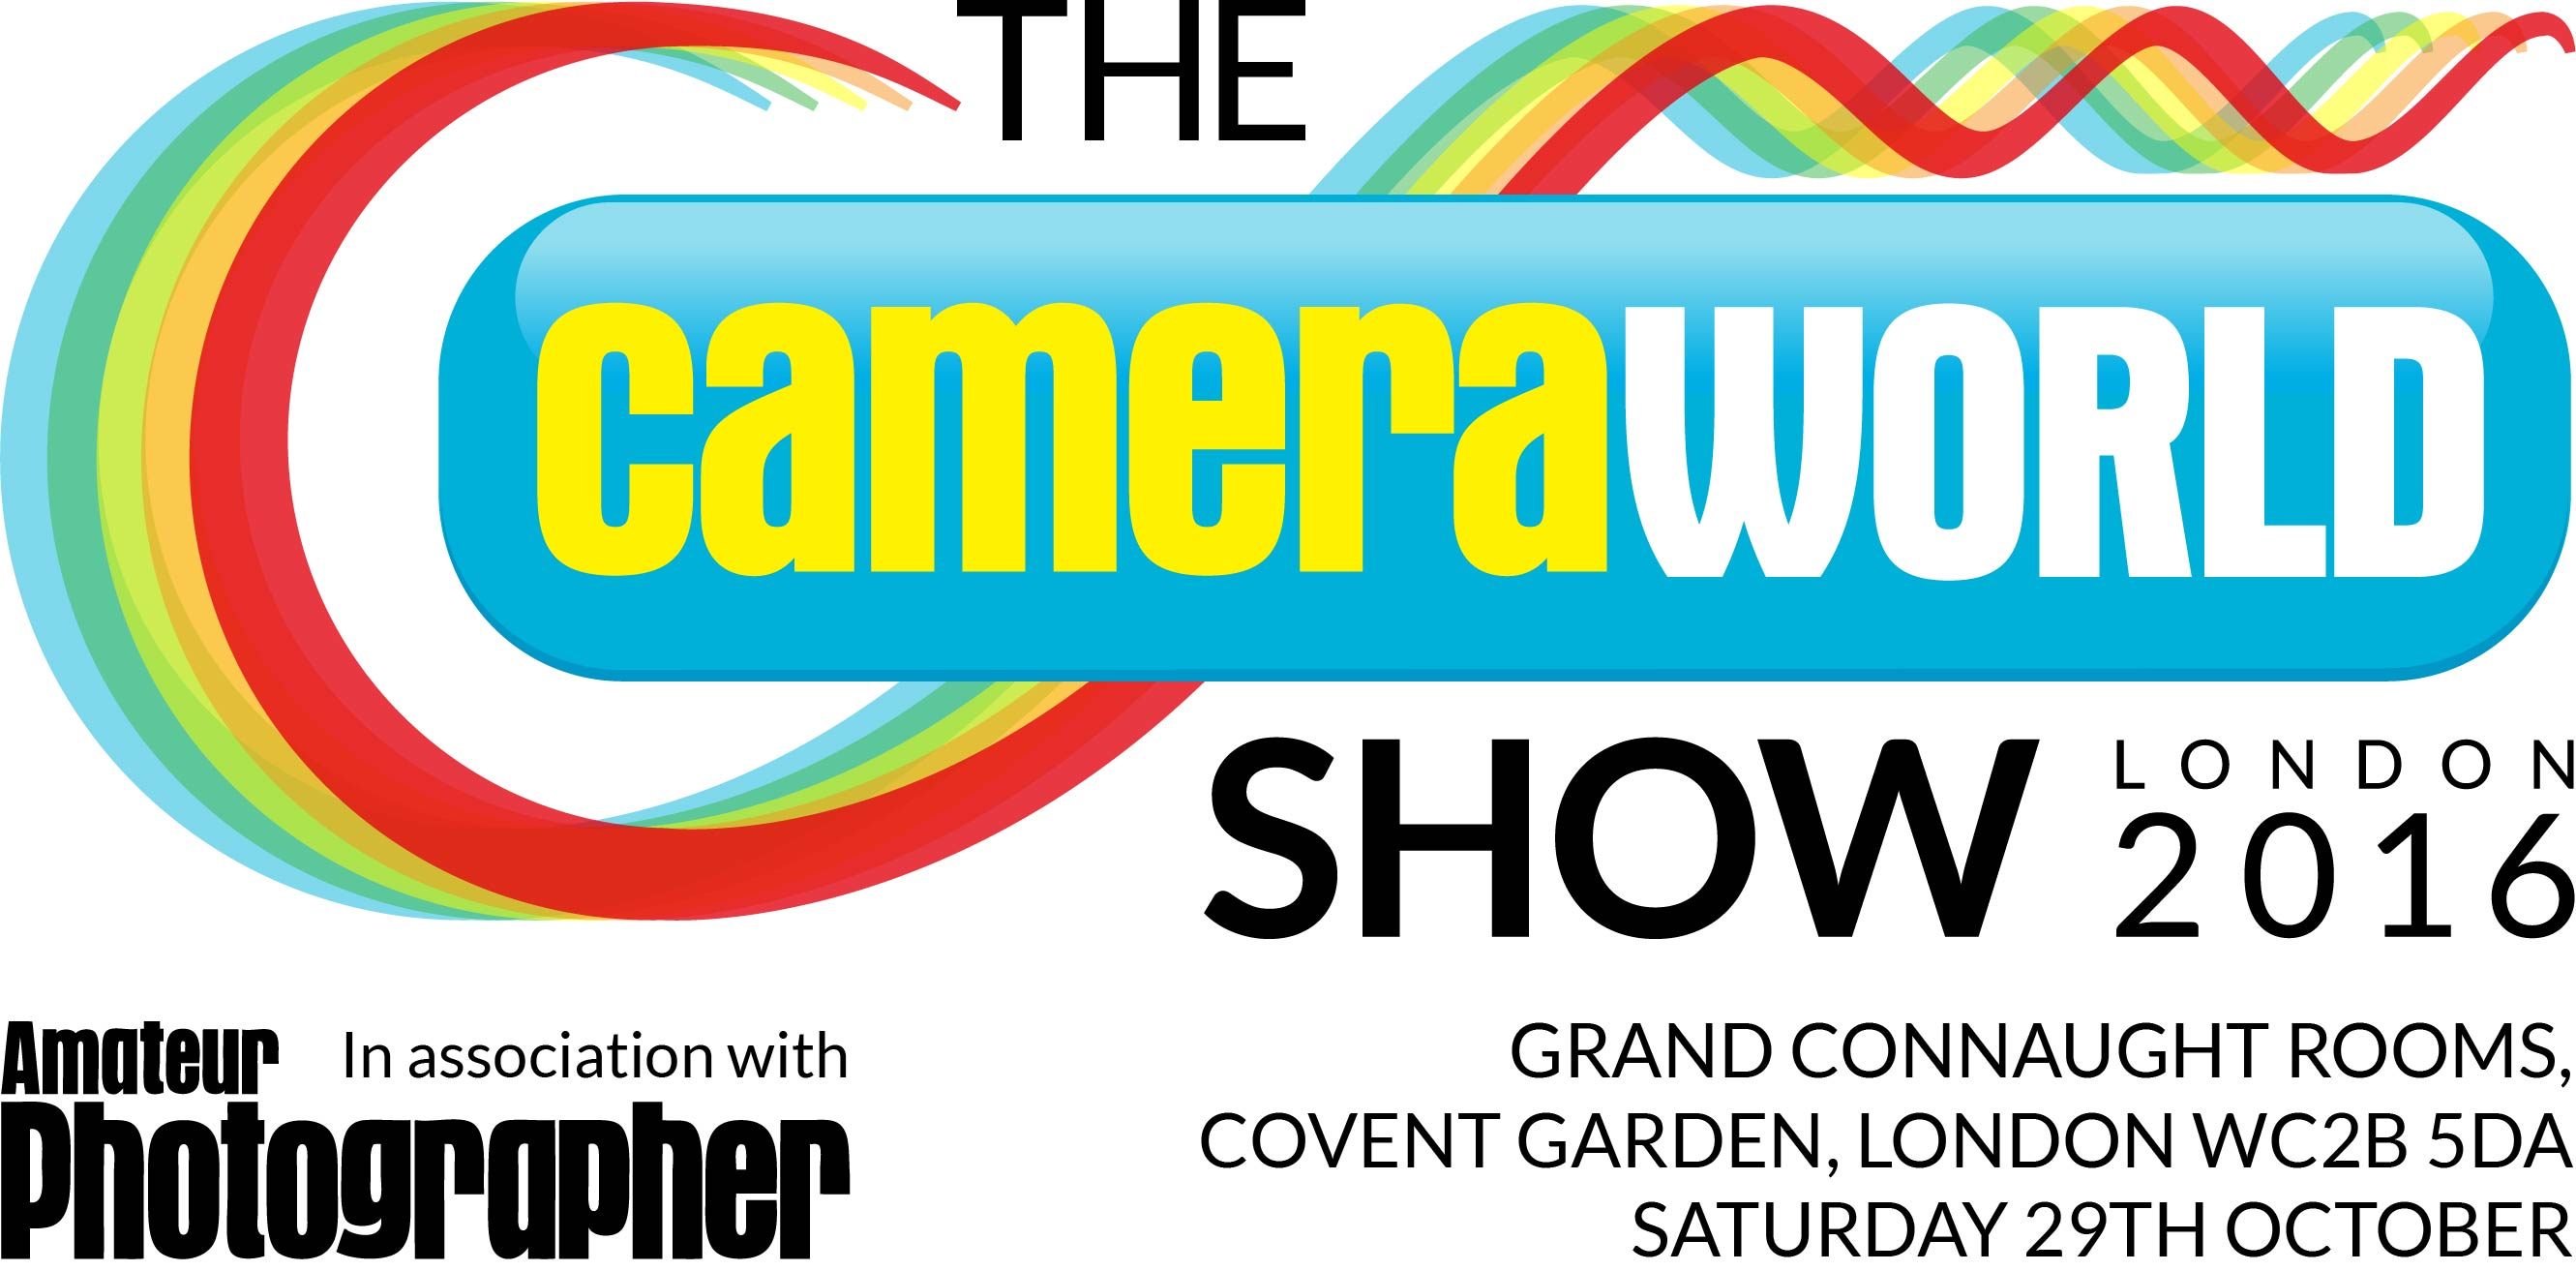 The CameraWorld Show London 2016